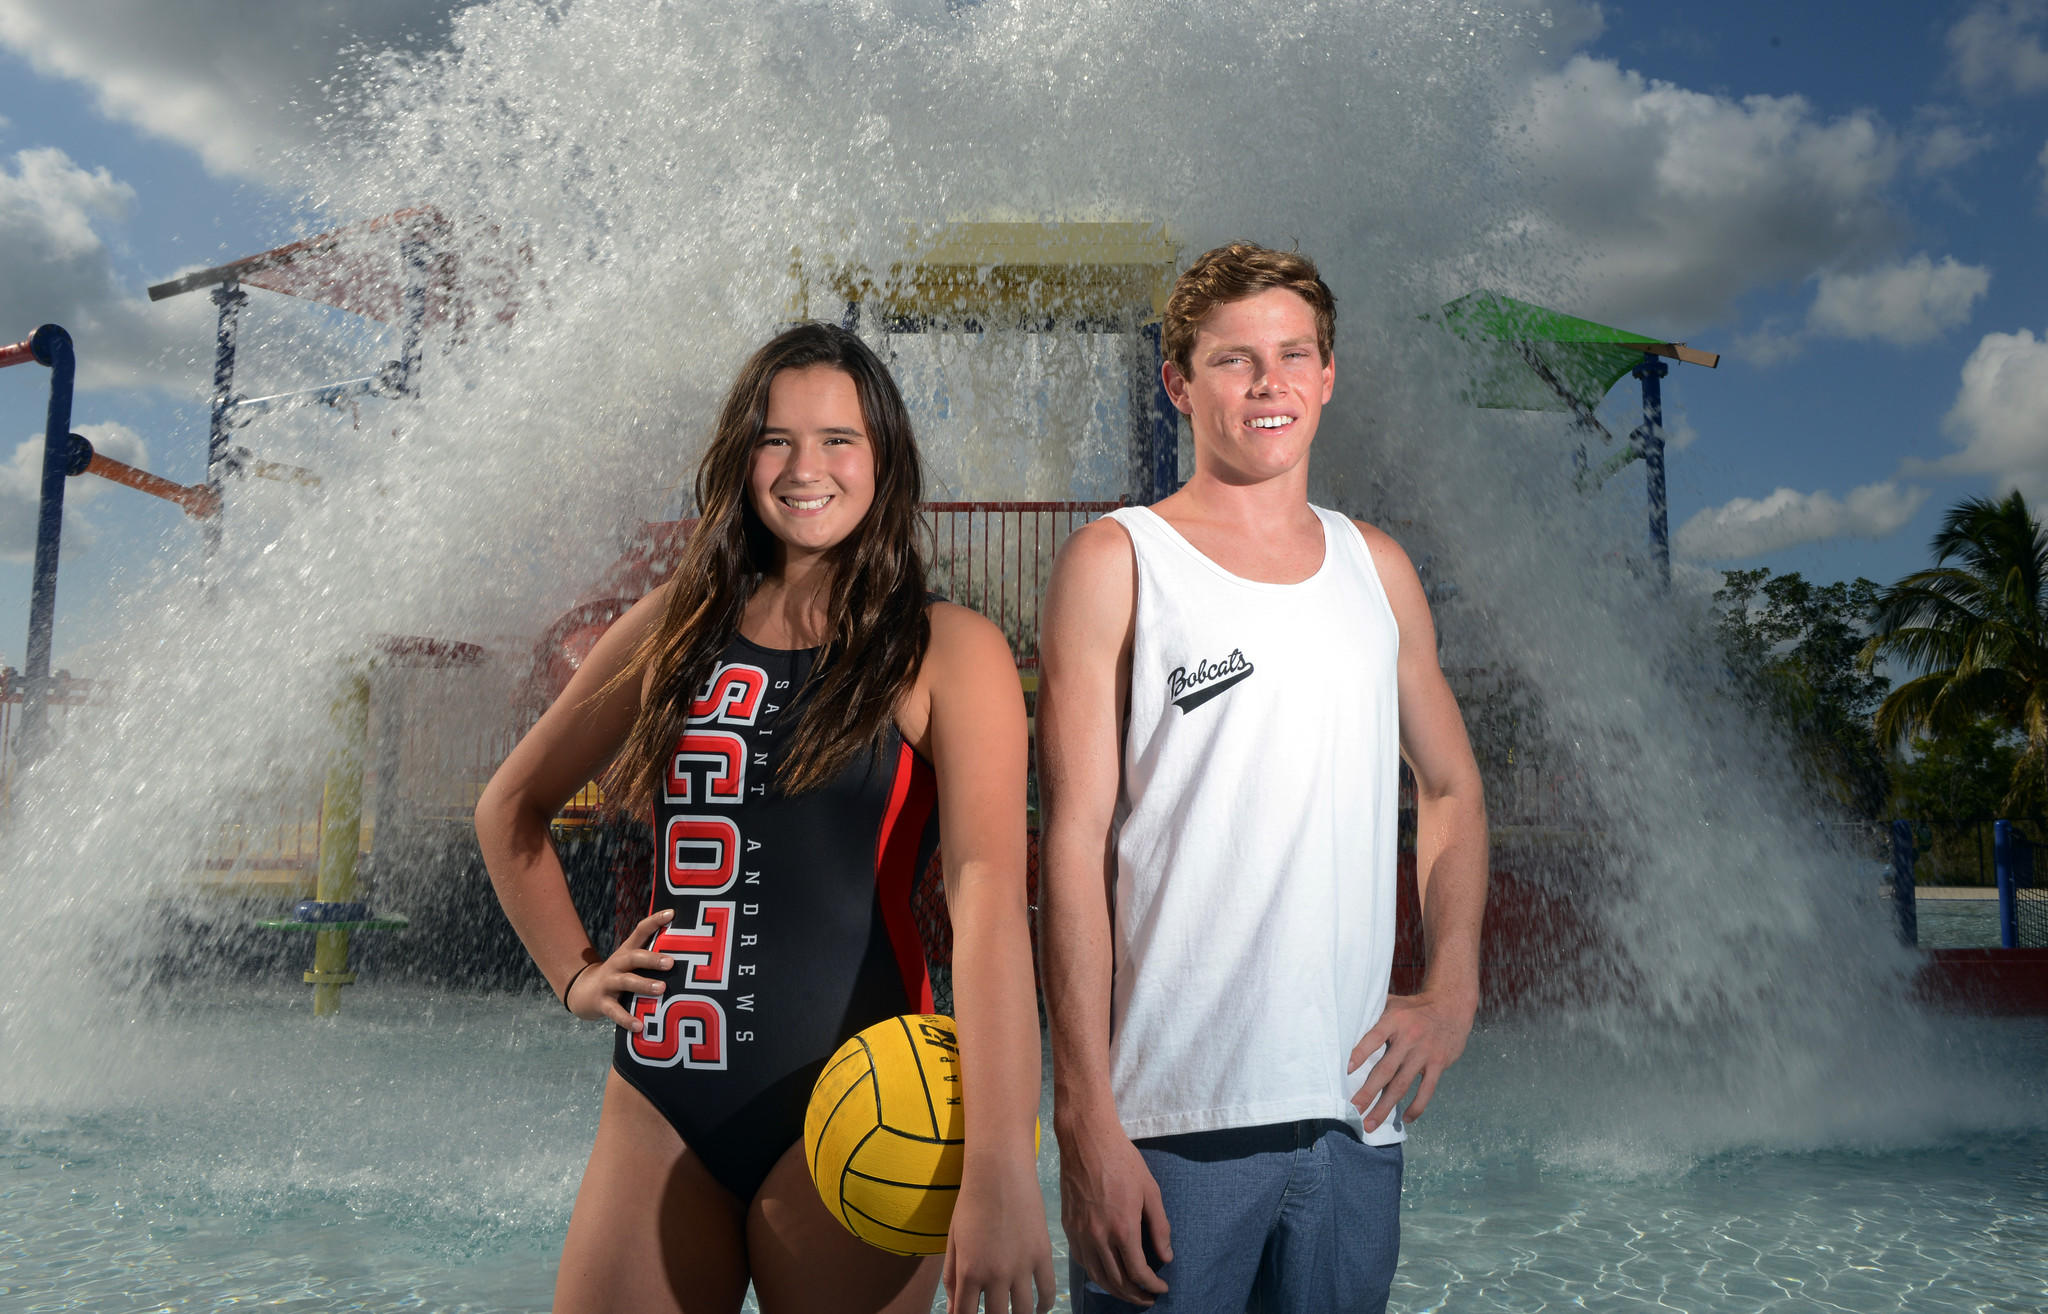 Kate Cassidy of St.Andrew's School and Cole Grady of Boca Raton High are the water polo players of the year. Spring 2014 All County Players of the Year. Deerfield Beach, FL. 5/21/14. Jim Rassol, Sun Sentinel.